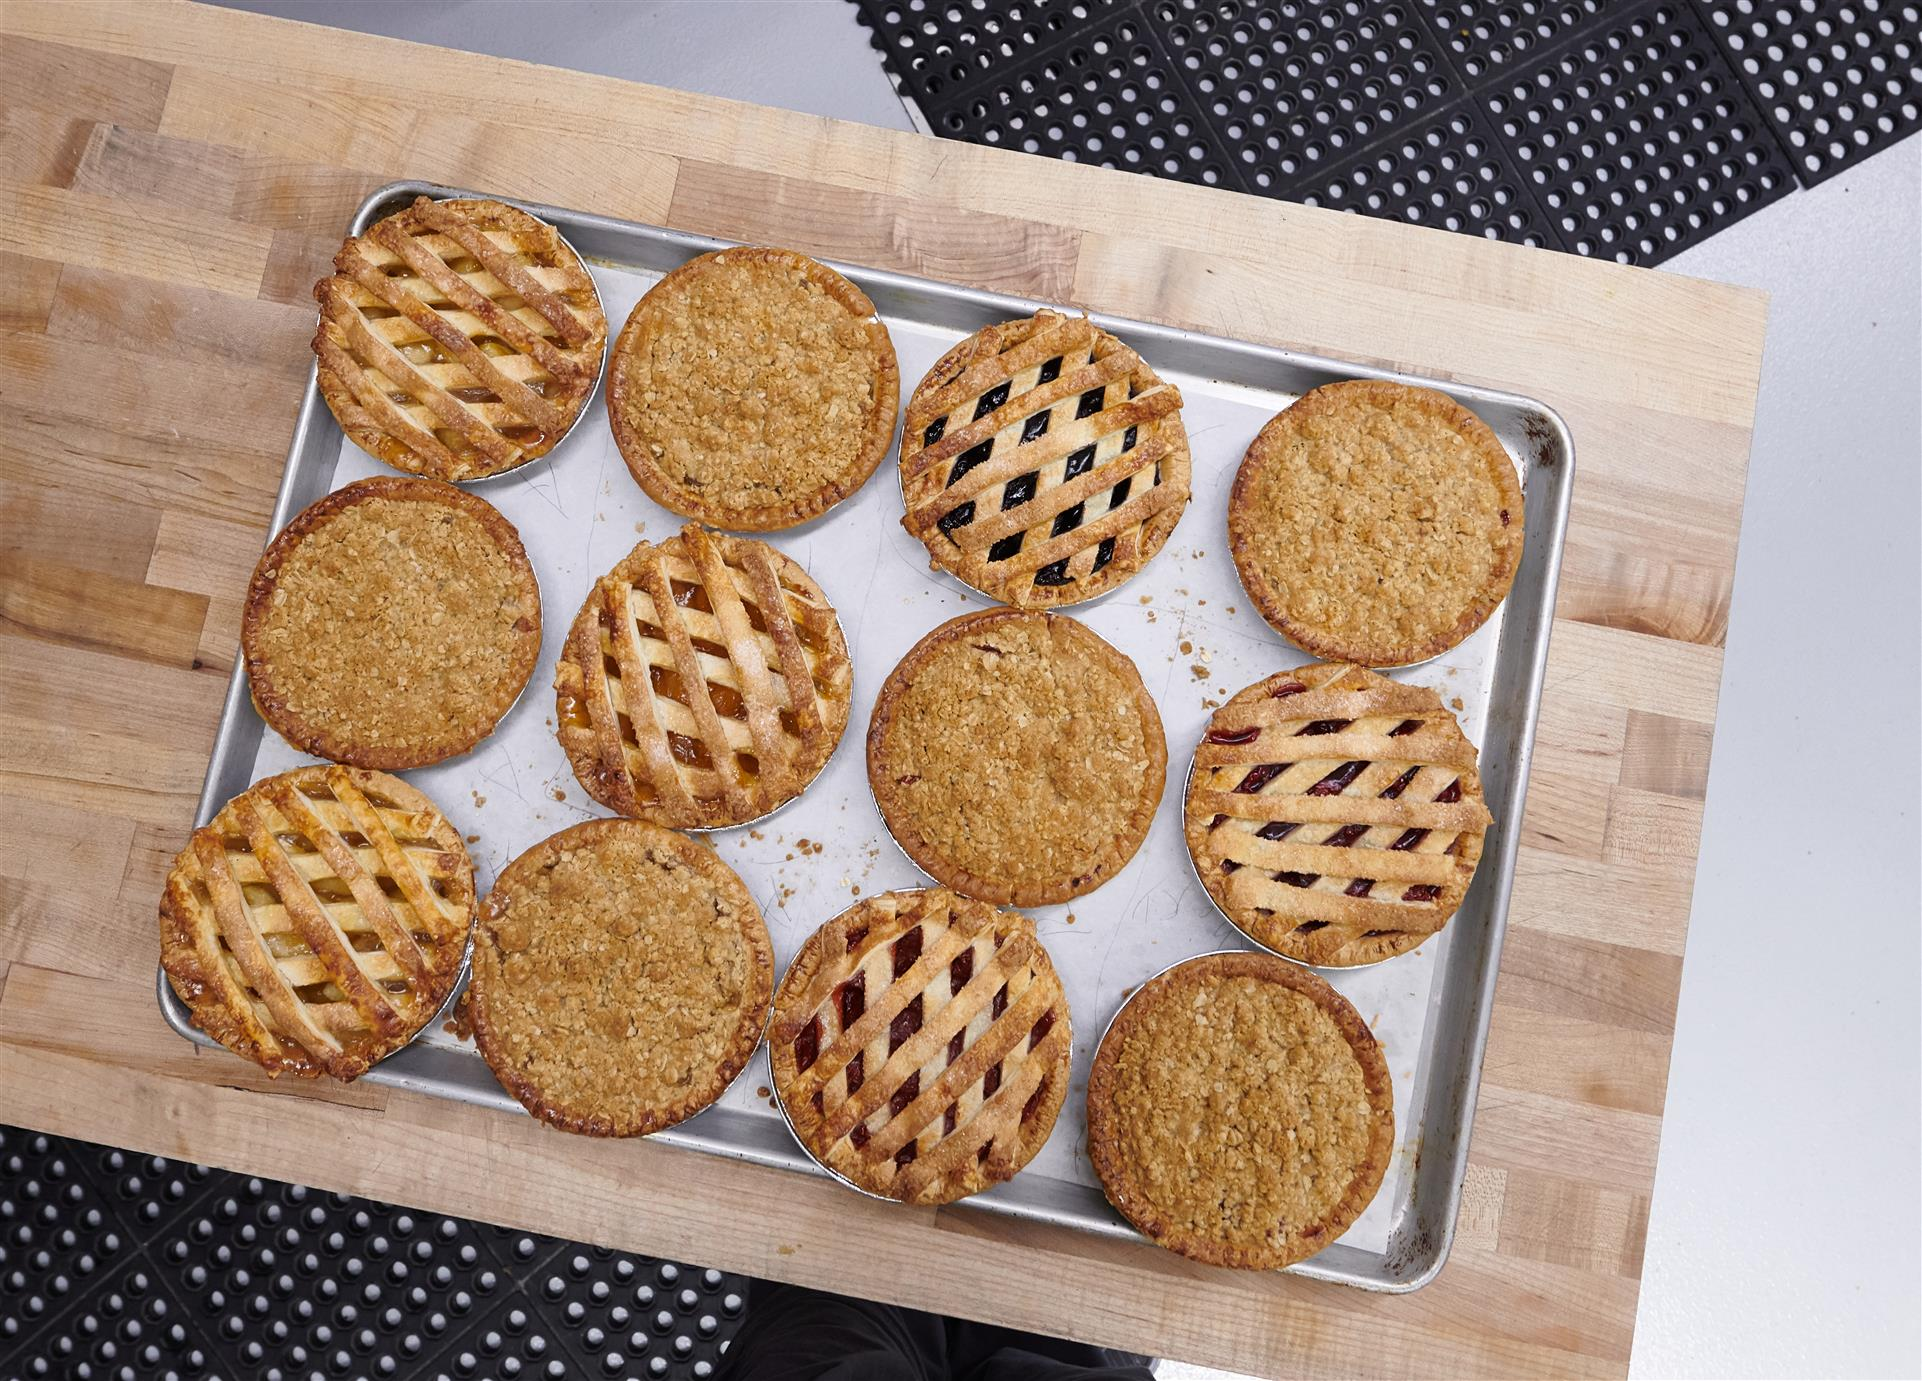 assortment of baked pies on a tray